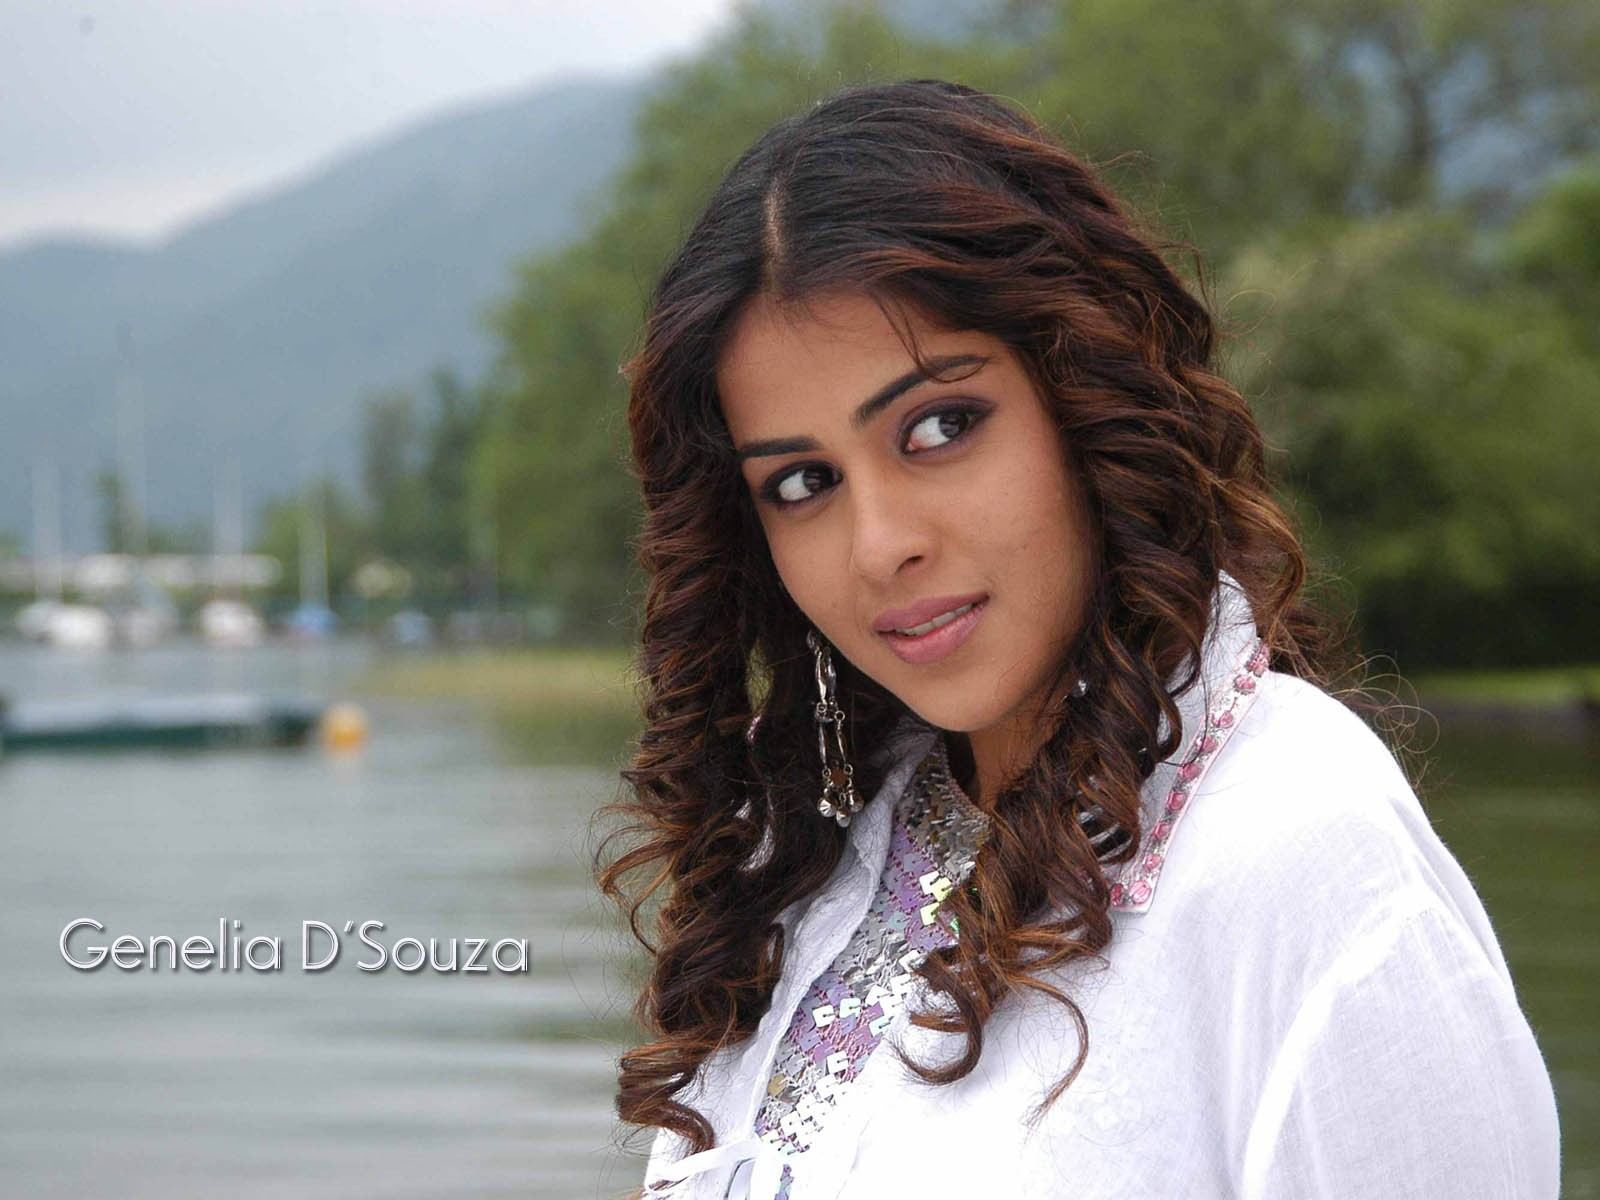 wallpaperfreeks: genelia d'souza wallpapers 1024x768